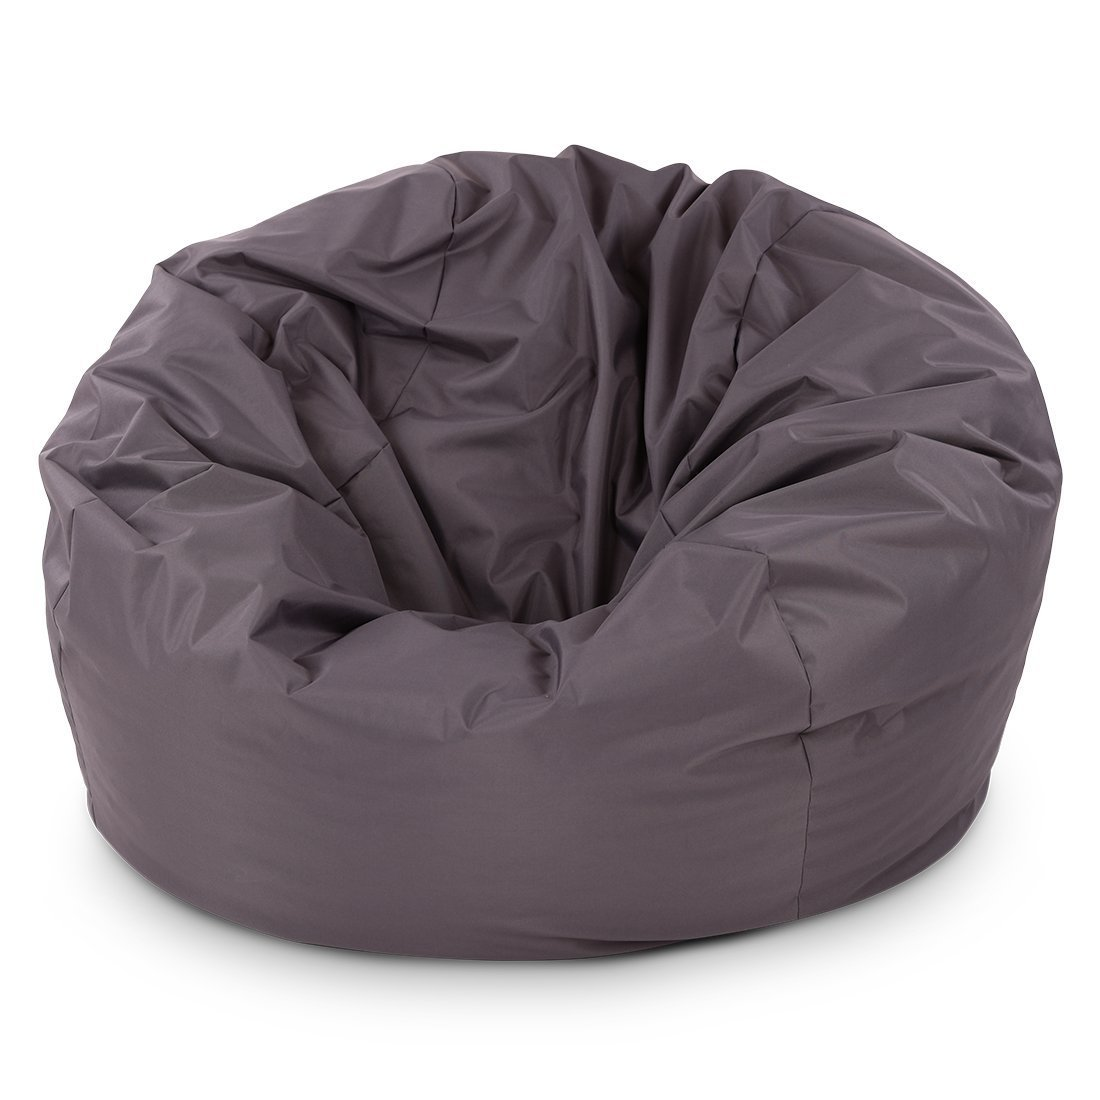 Foam Bean Bag Chair Memory Foam Bean Bag Chair Home Furniture Design